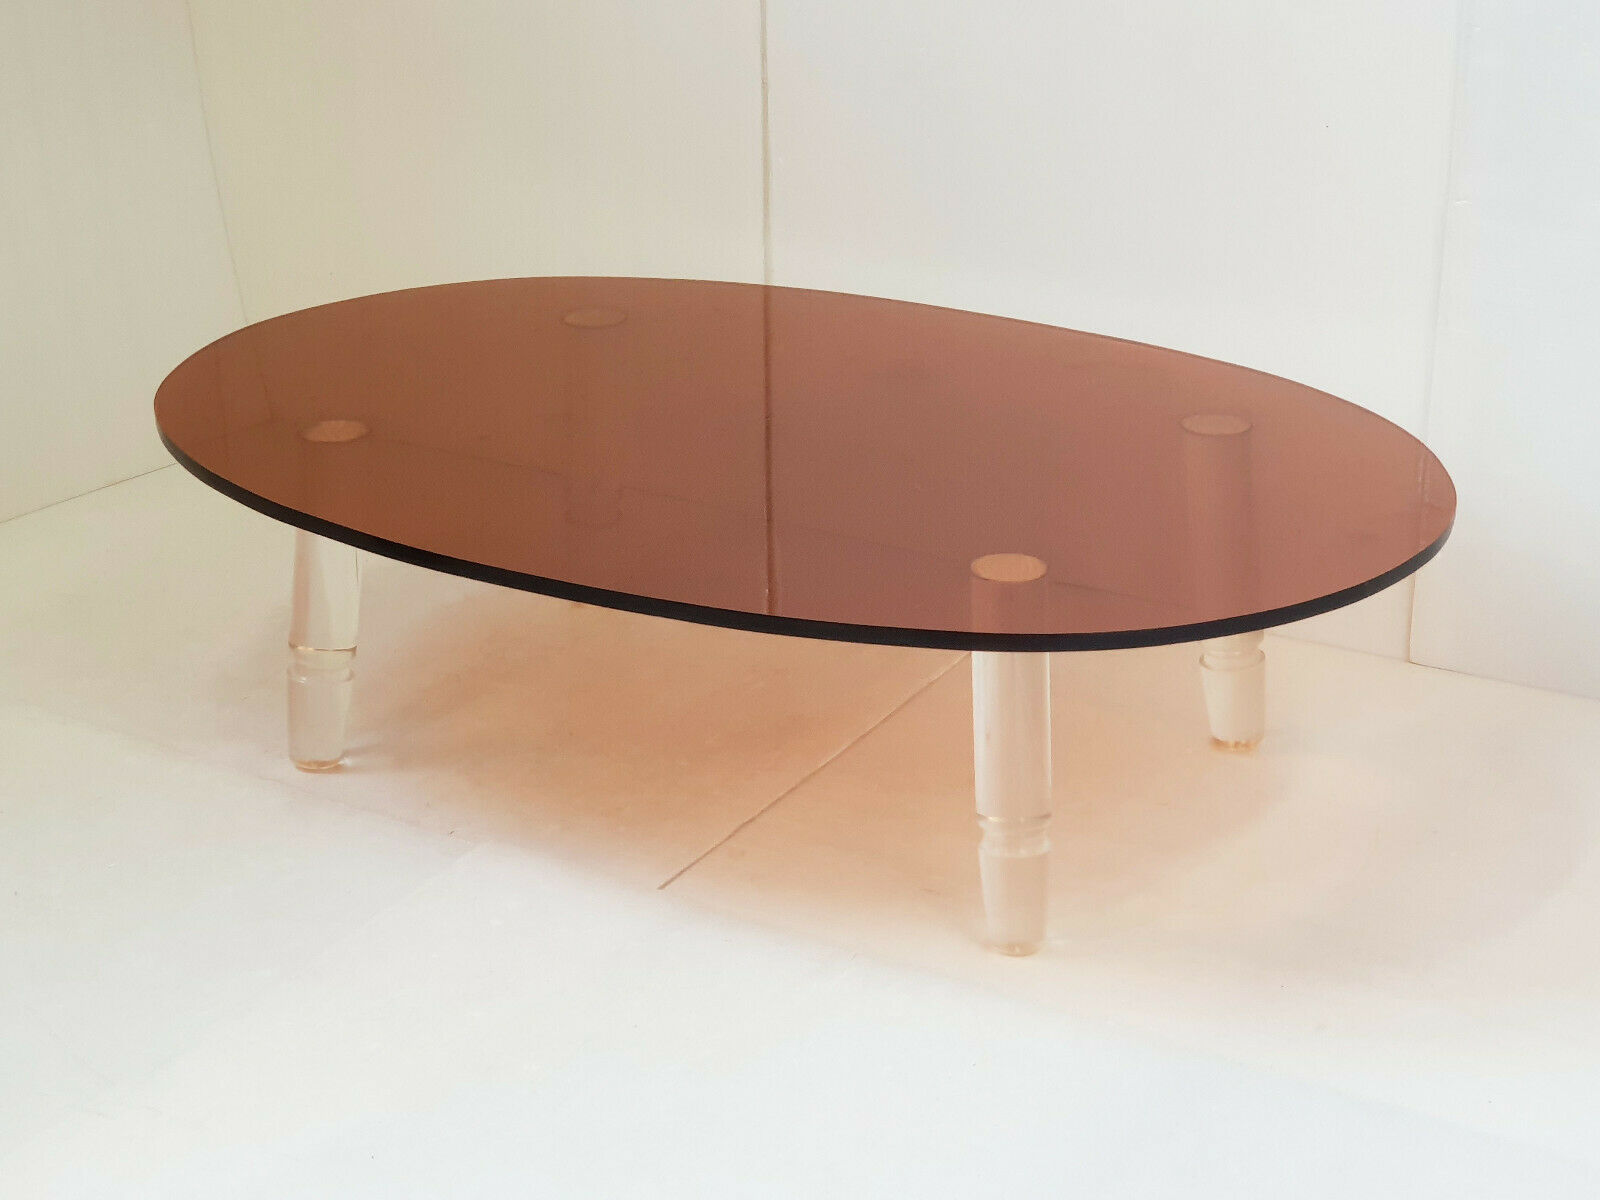 magnificent 1970 vintage coffee table in smoked transparent 70s plexiglas